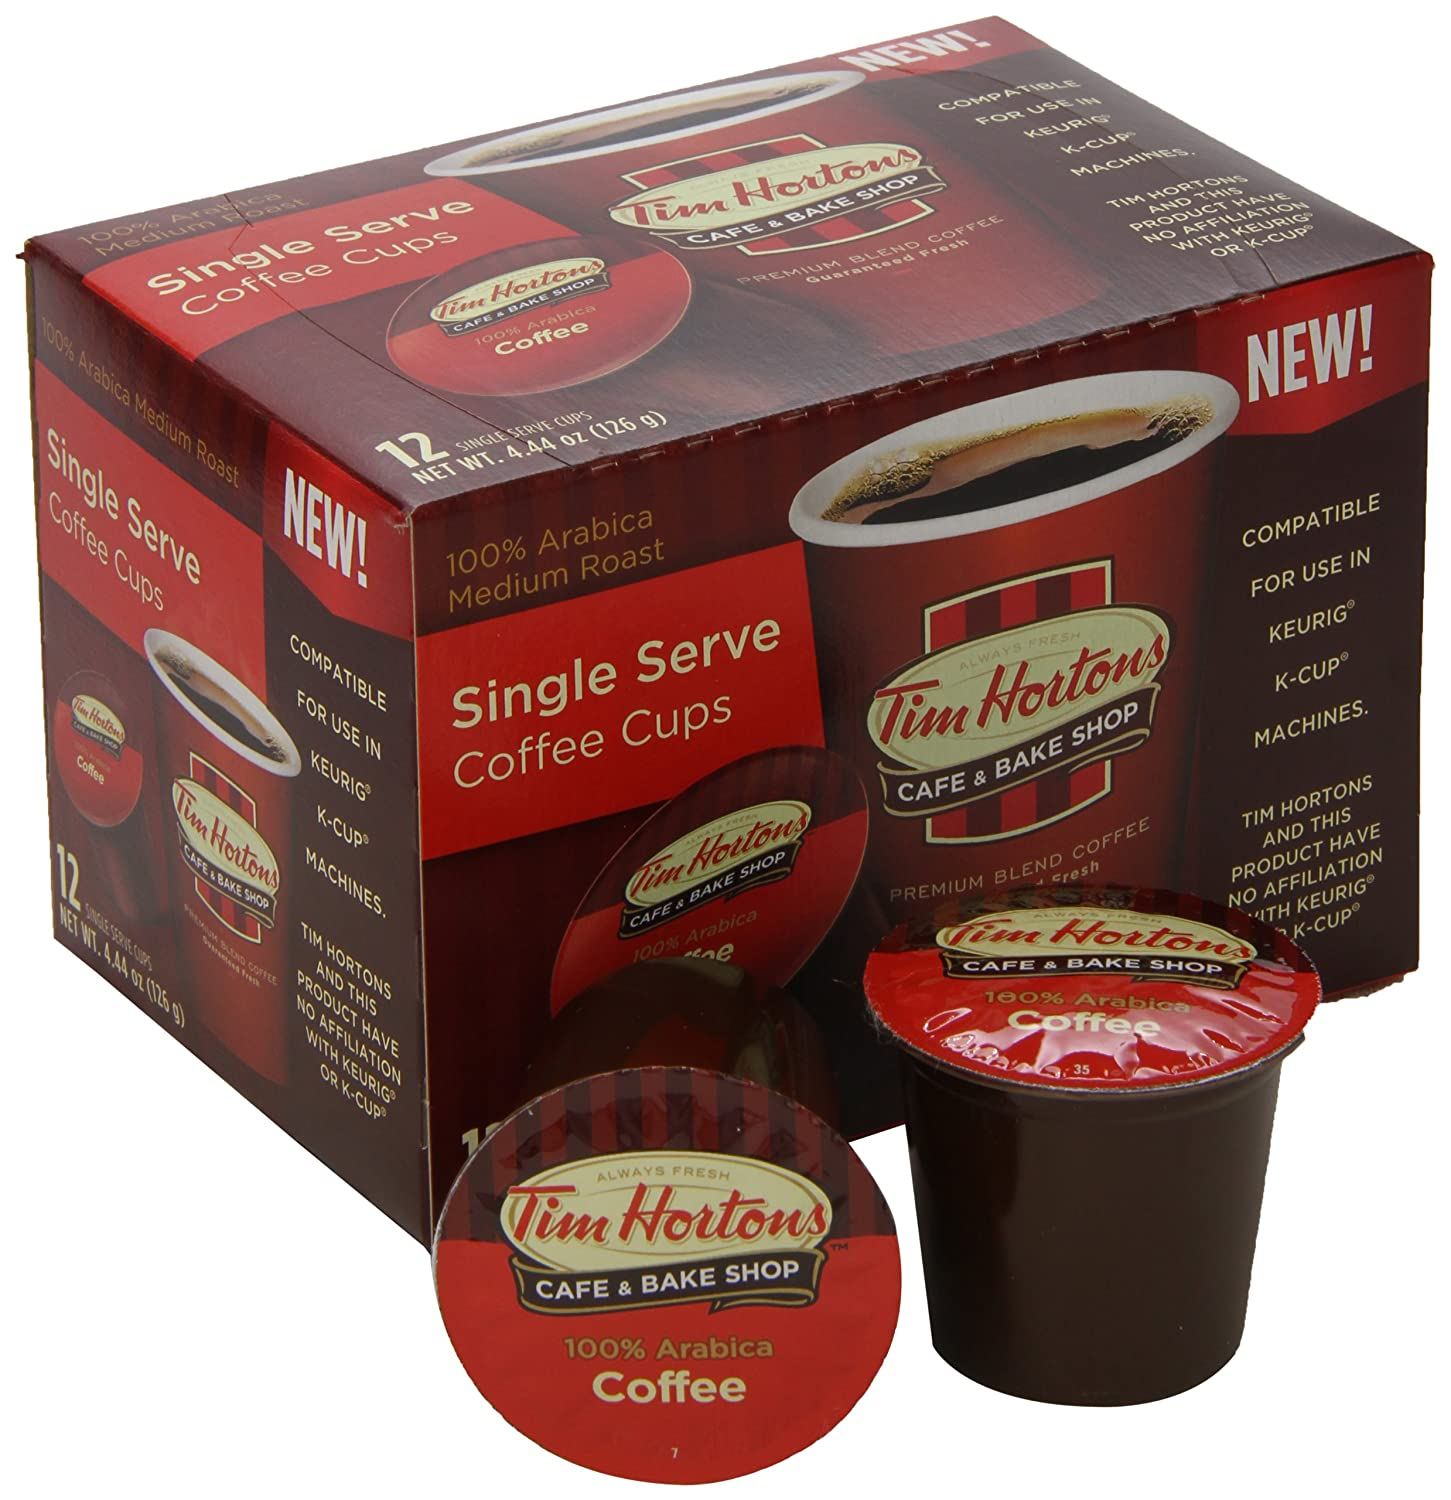 tim single serve coffee cups original blend 12 count pack of 6 amazoncom grocery u0026 gourmet food - K Cups Bulk